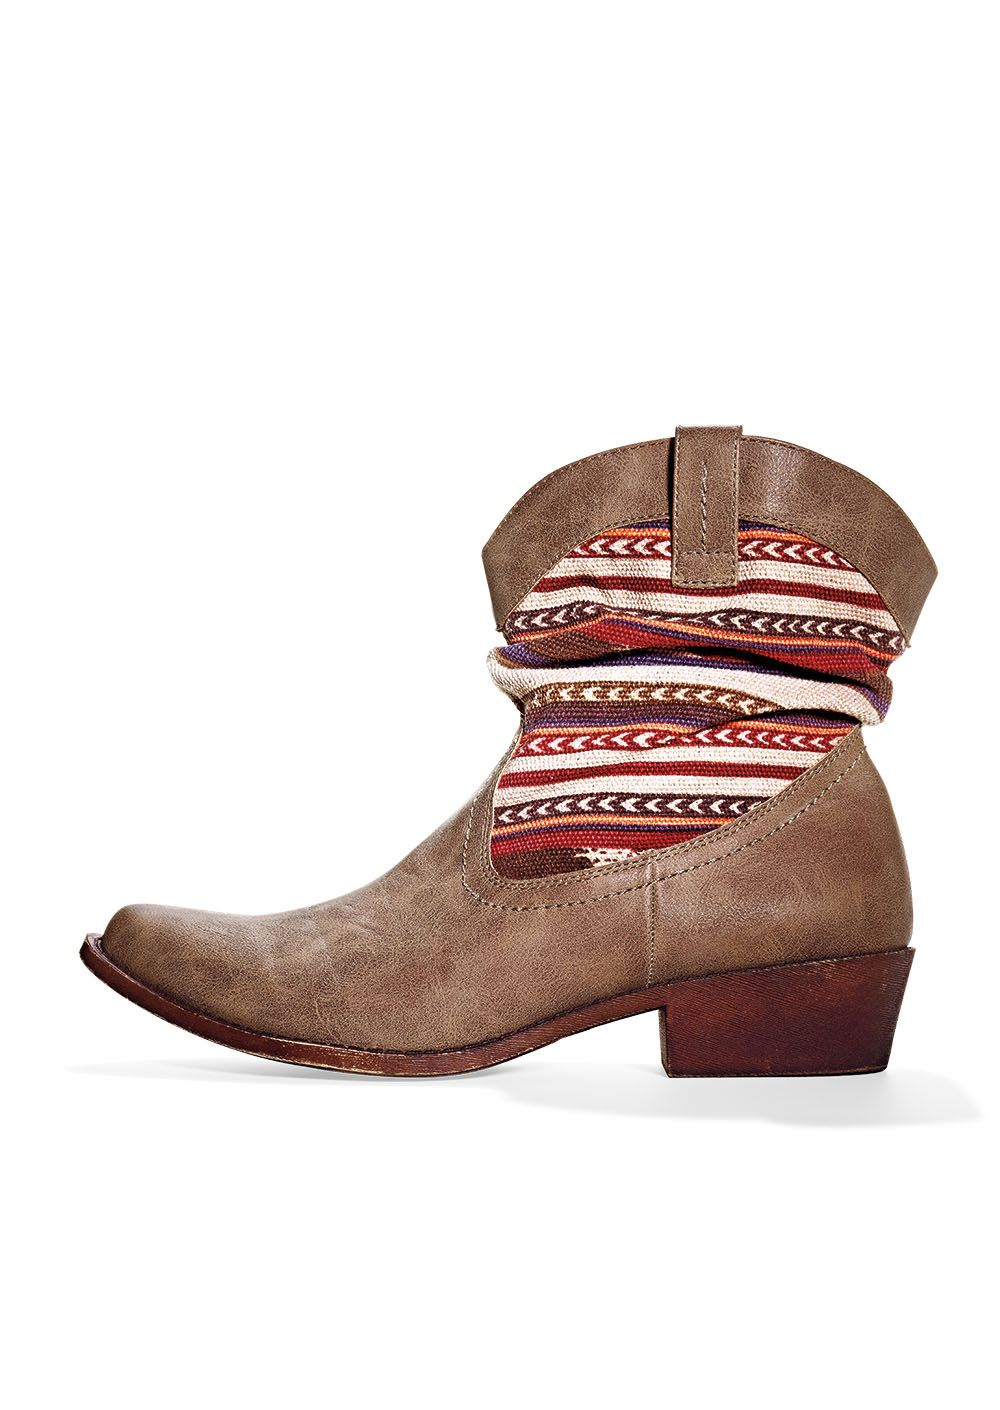 29dc840f8c653 Aztec booties  Marshalls  falltrends   Head Over Heels   Pinterest